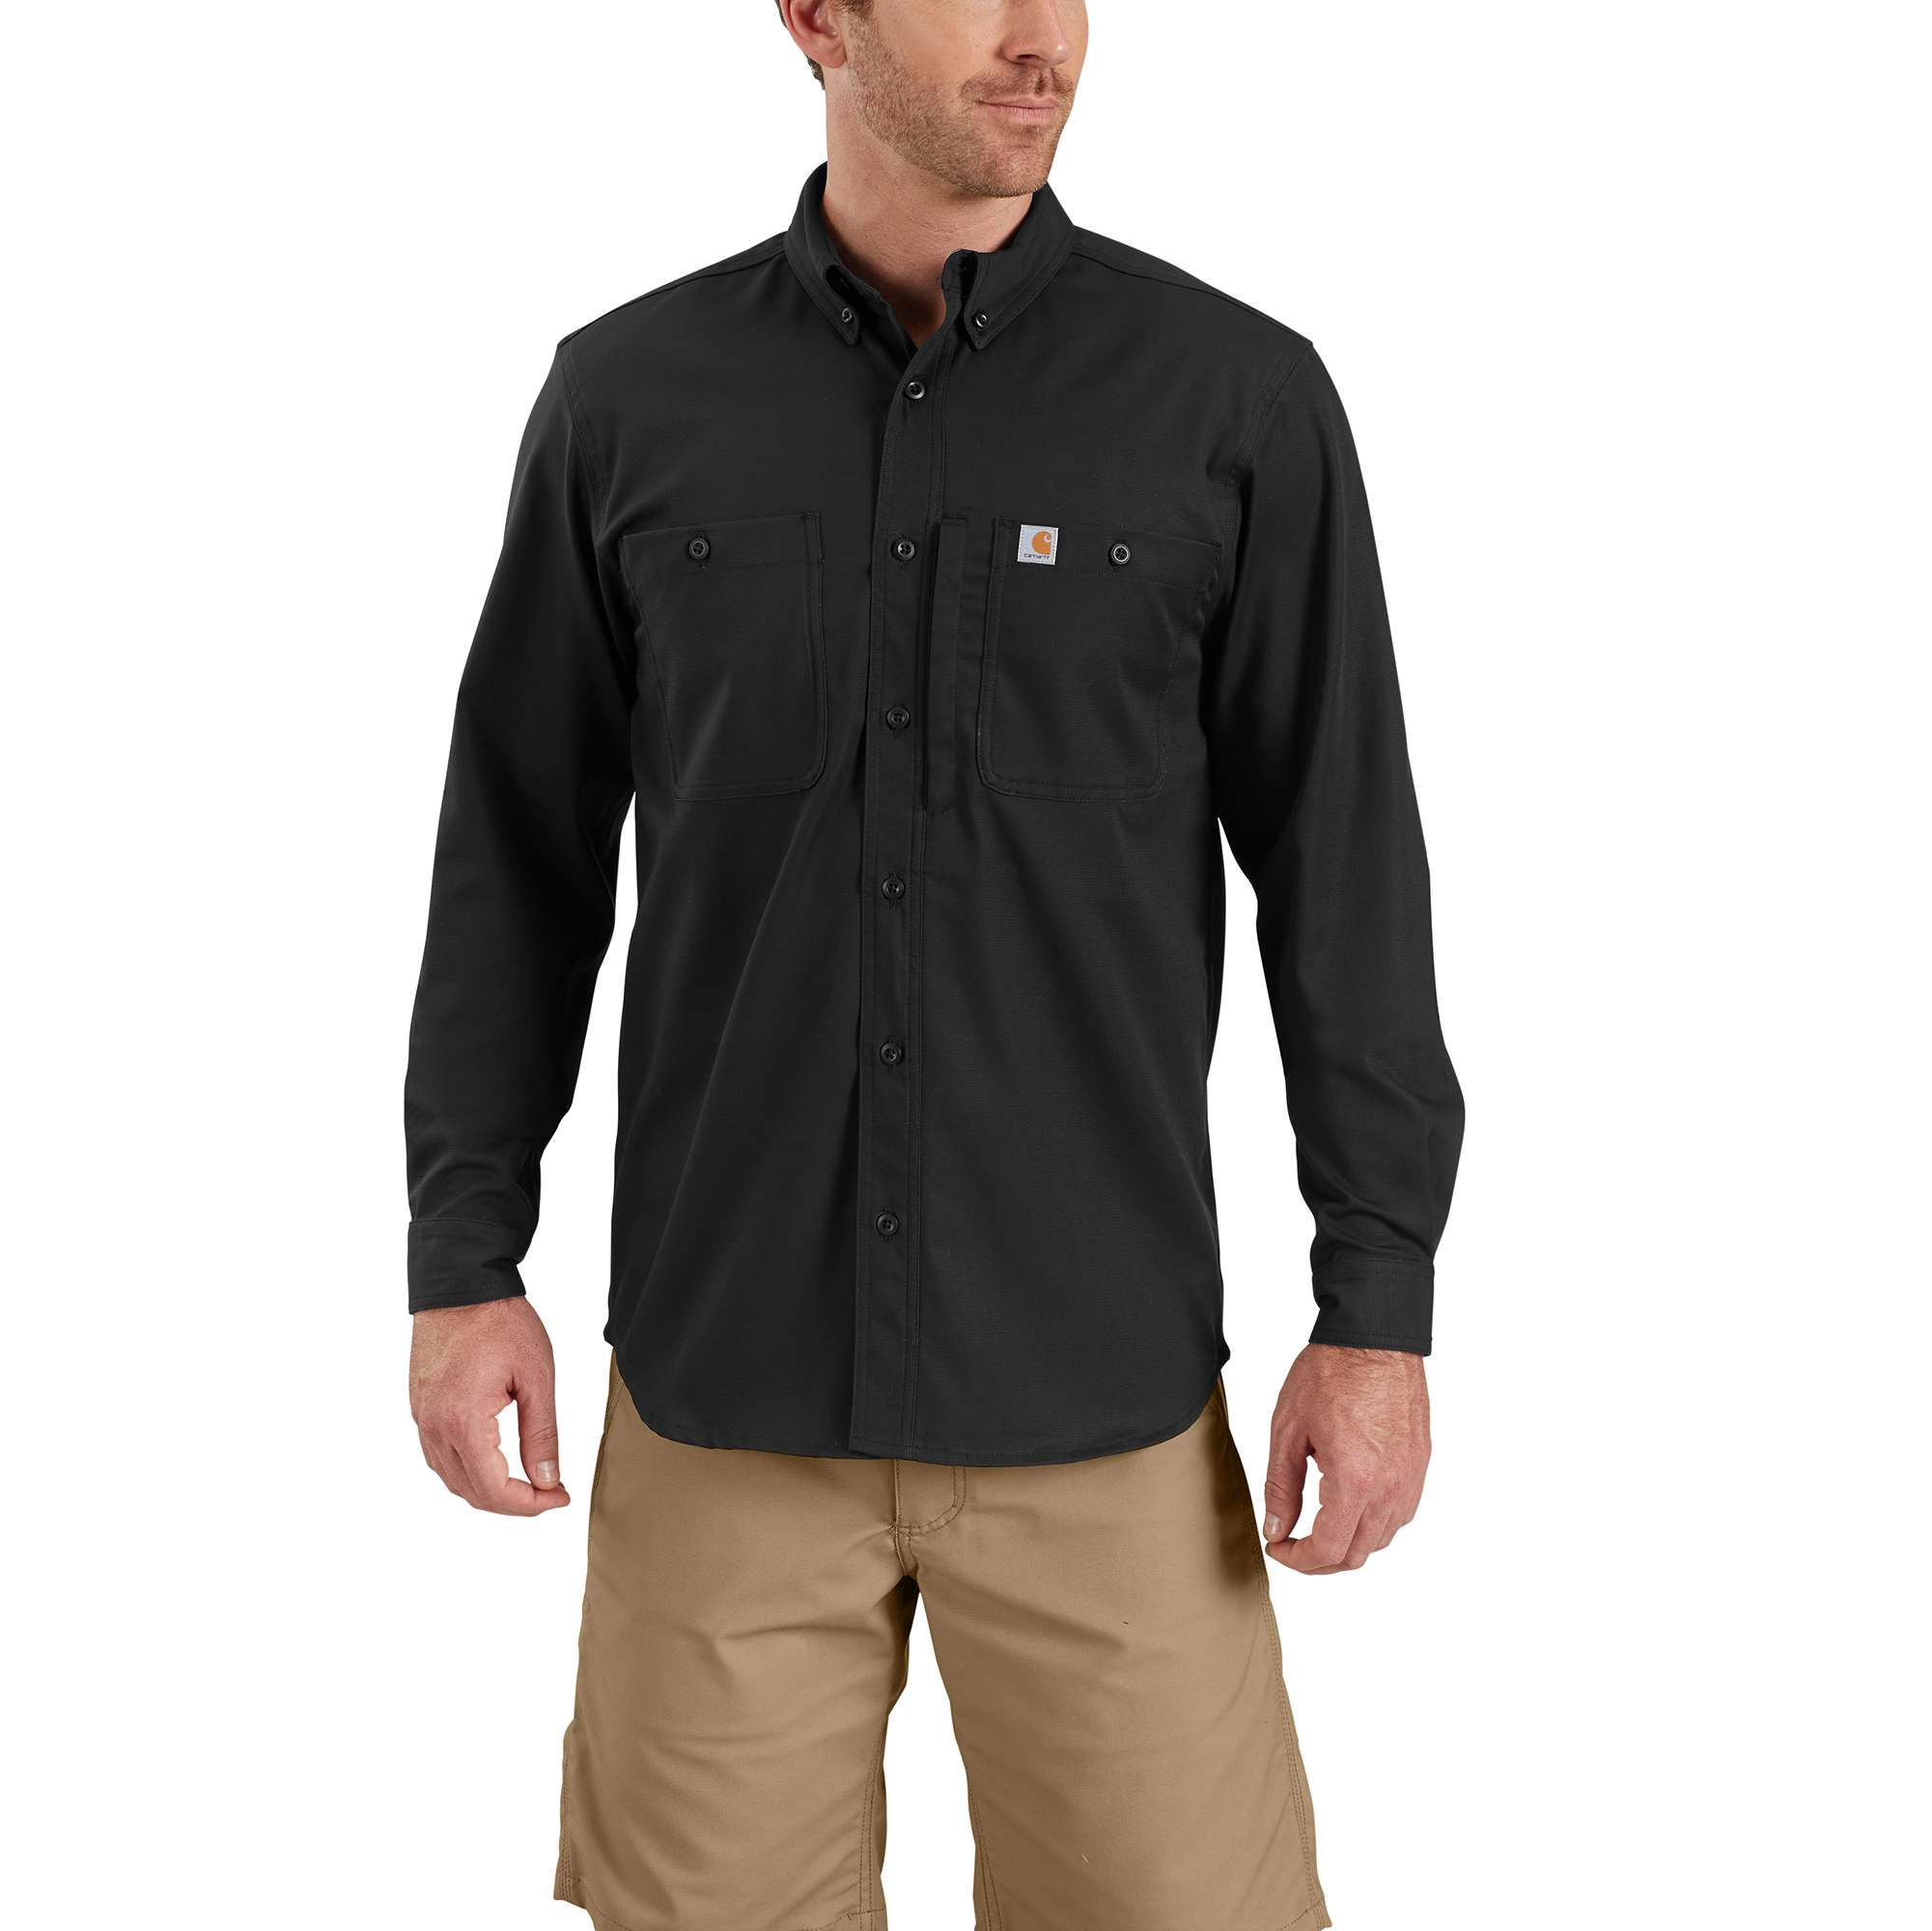 Carhartt Rugged Professional™ Series Men's Long-Sleeve Shirt